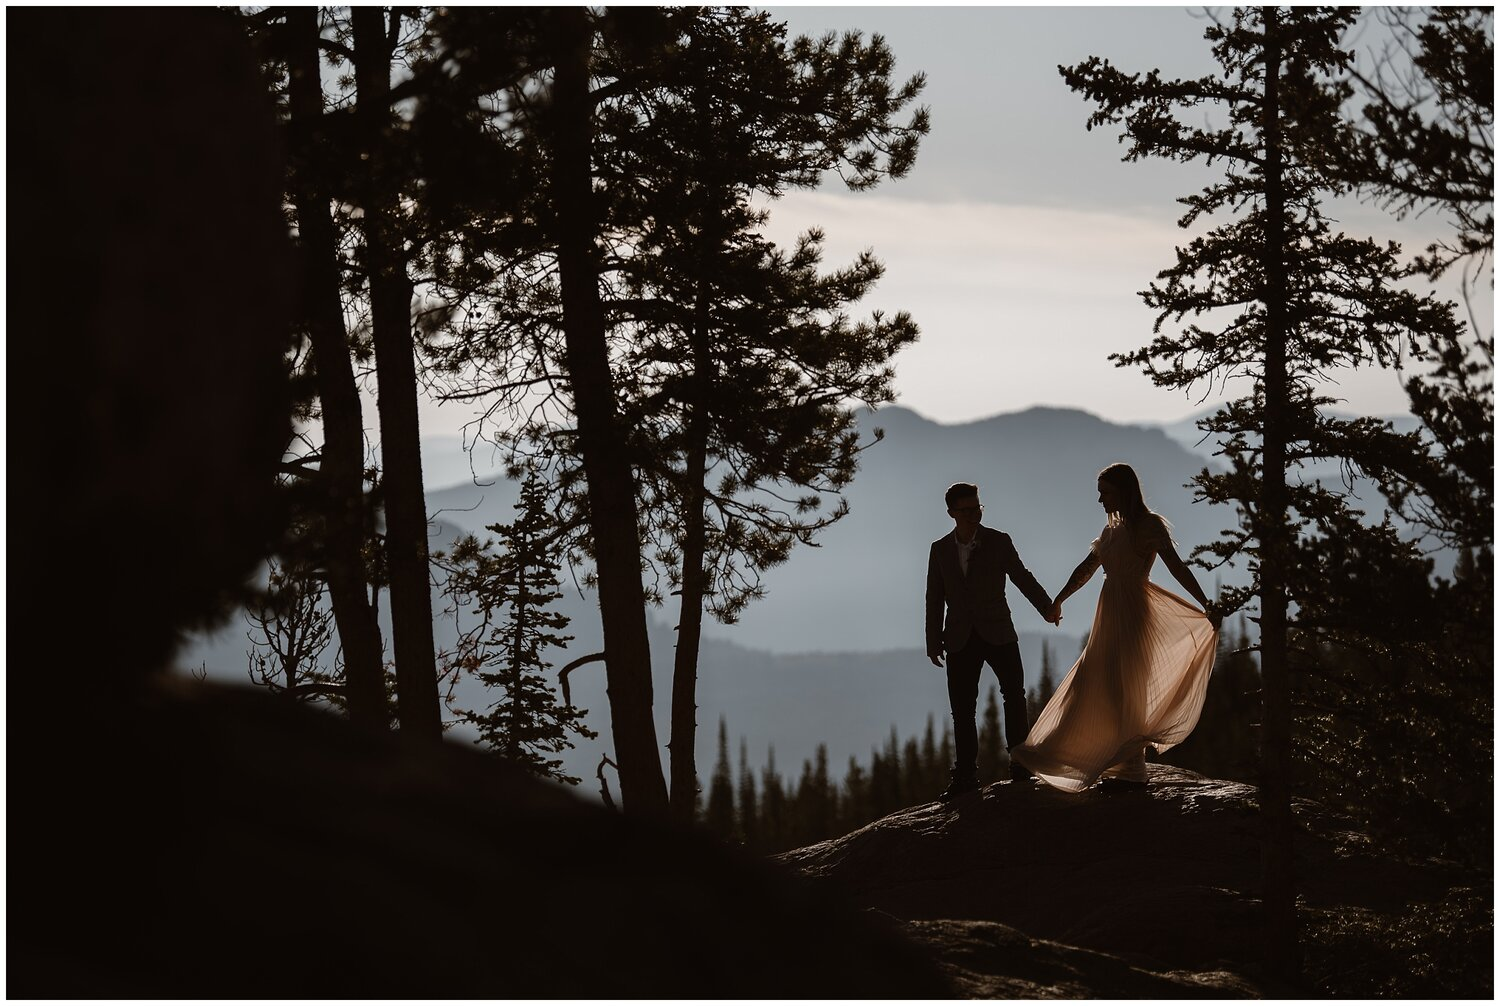 A bride and groom stand in the shadows of the forest on their wedding day.